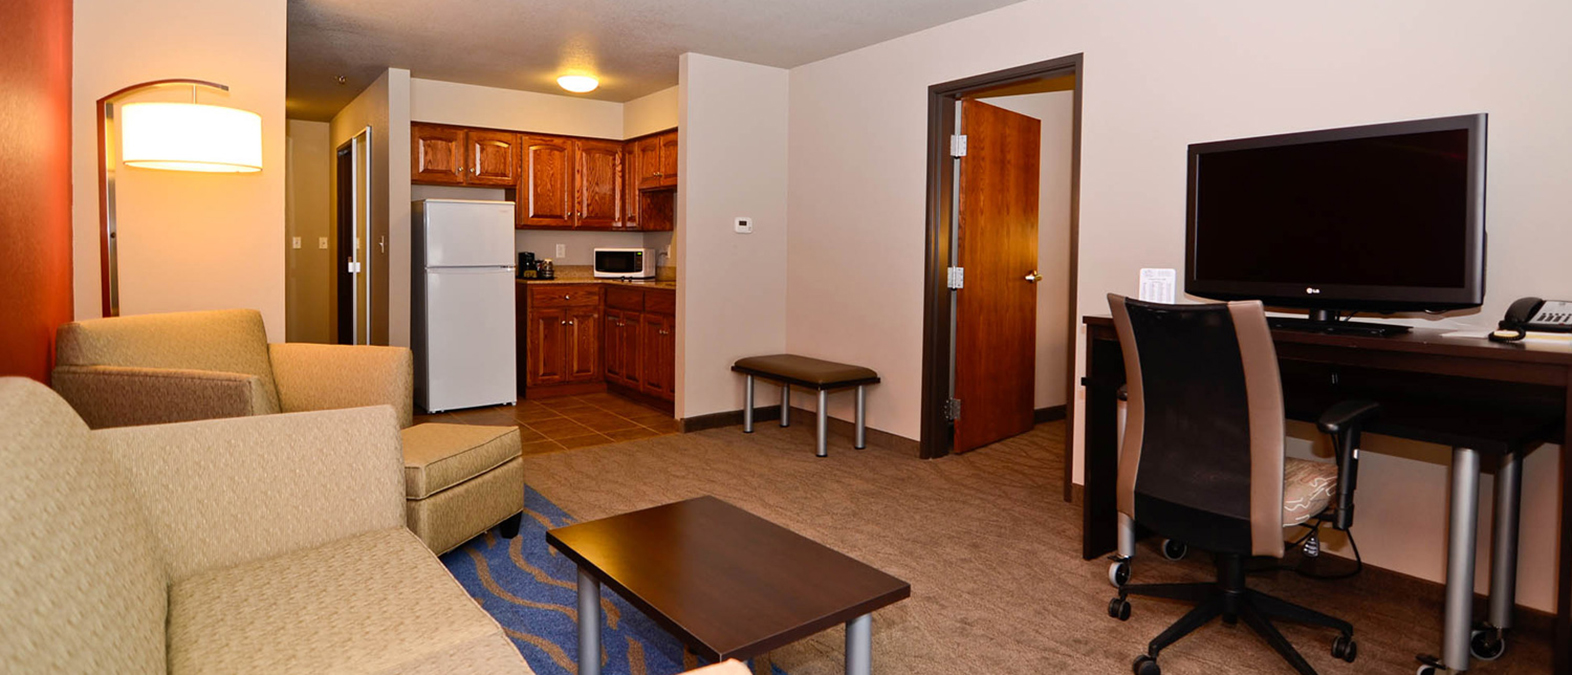 Stay Astoria Dickinson affordable long term stays just off I-94 and Hwy 22